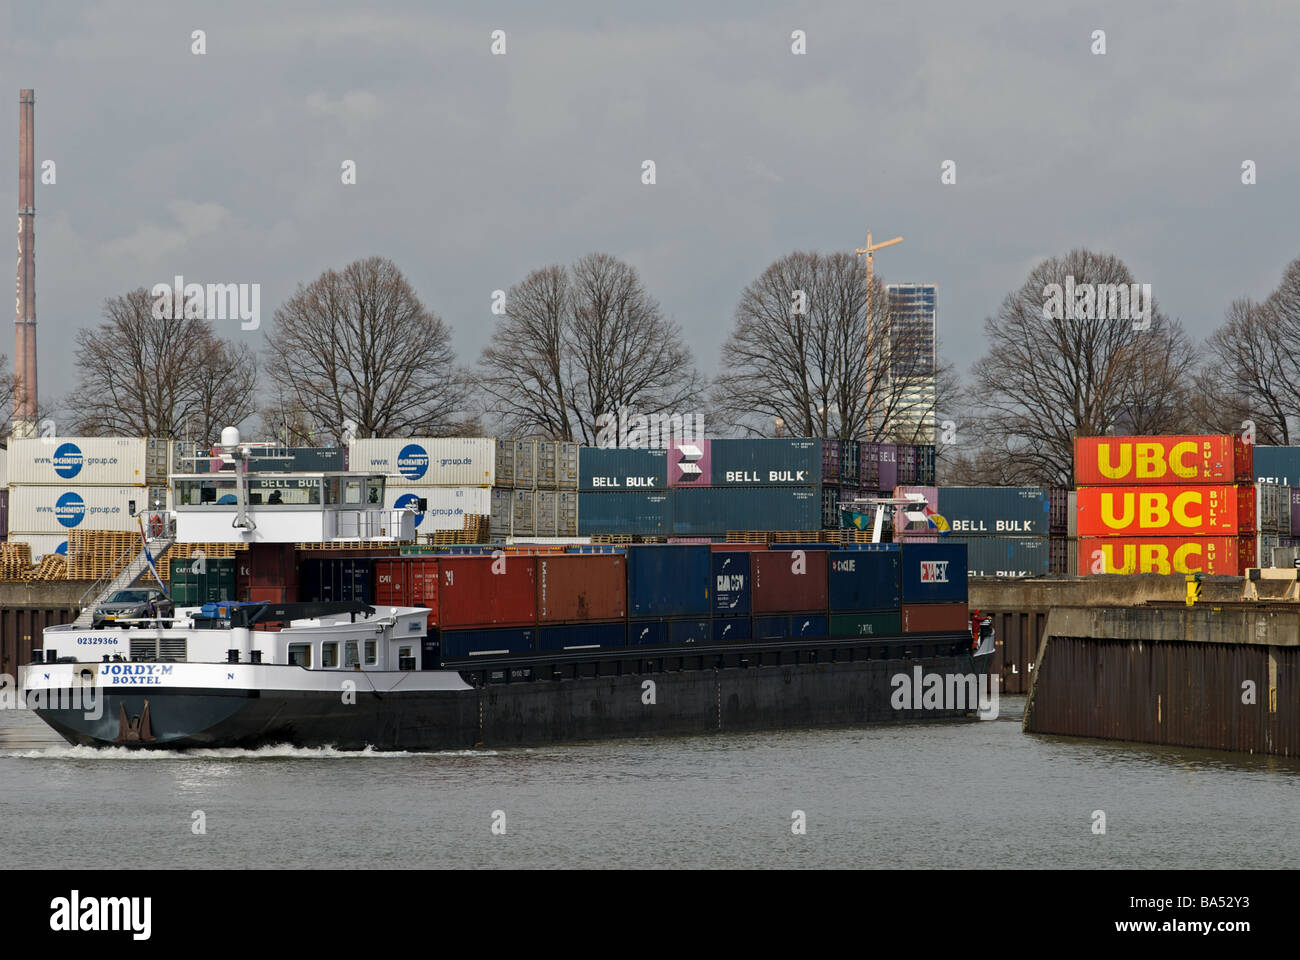 Neihl 1 container terminal, Cologne, North Rhine-Westphalia, Germany. - Stock Image